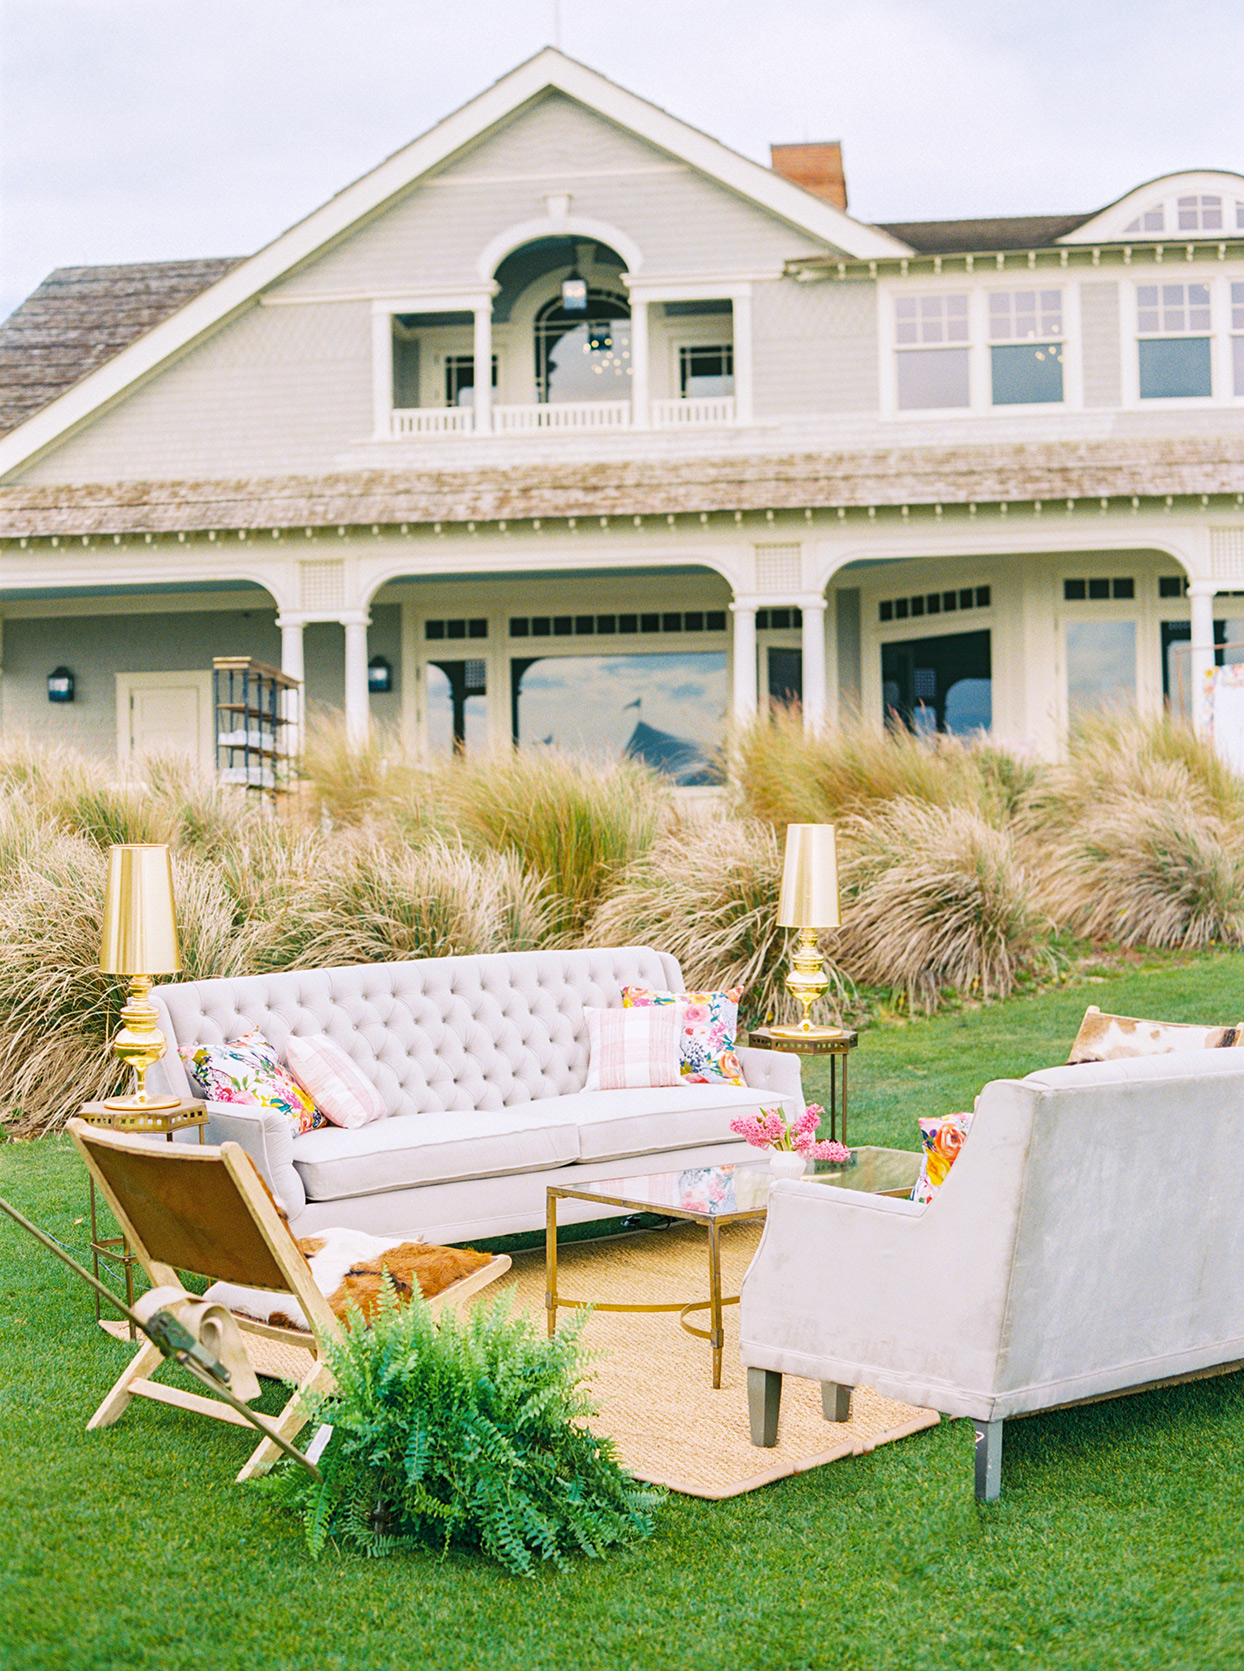 lauren dan outdoor wedding lounge area in front of beach house